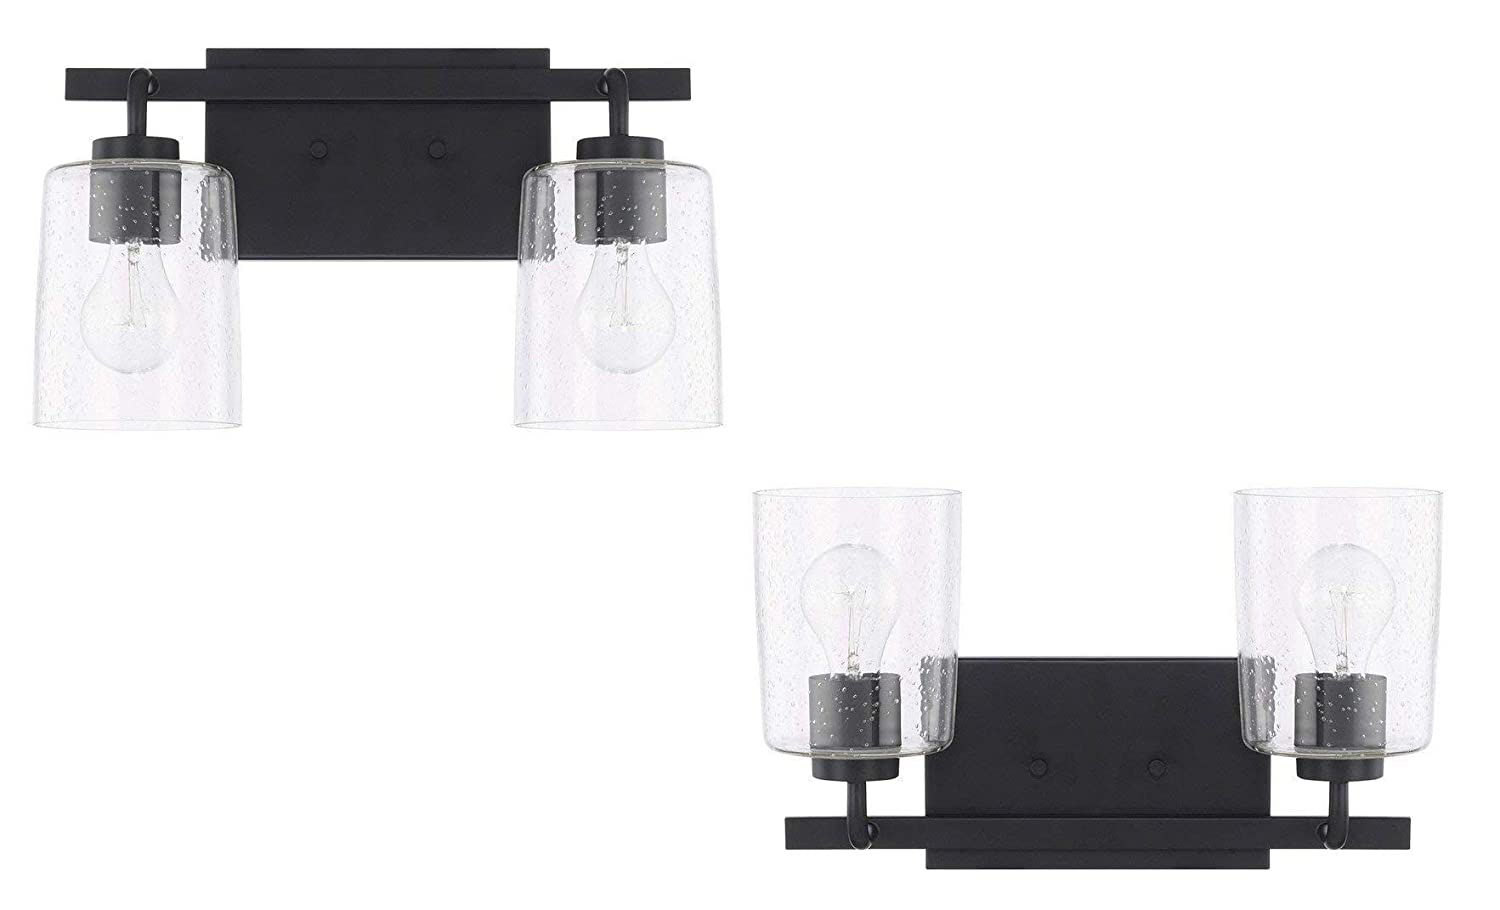 Capital Lighting Homeplace Greyson – Two Light Bath Vanity, Matte Black Finish with Clear Seeded Glass – 2 Pack